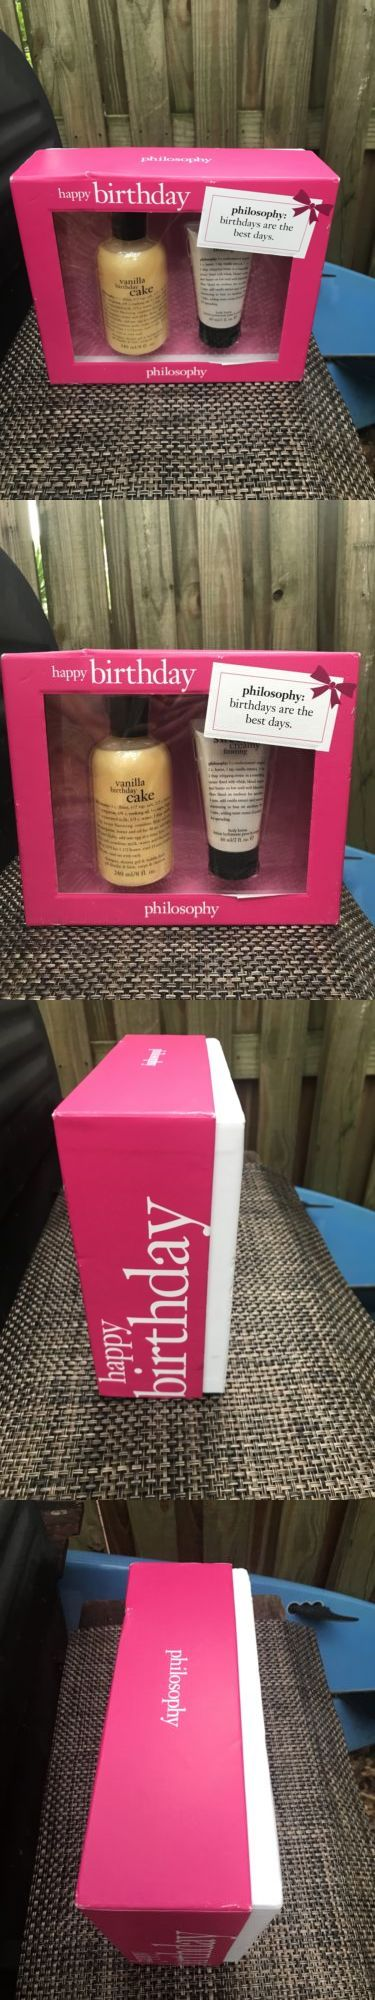 Bath Sets And Kits 67391 New Philosophy Vanilla Happy Birthday Sweet Cream Frosting Lotion Boxed Set BUY IT NOW ONLY 1998 On EBay